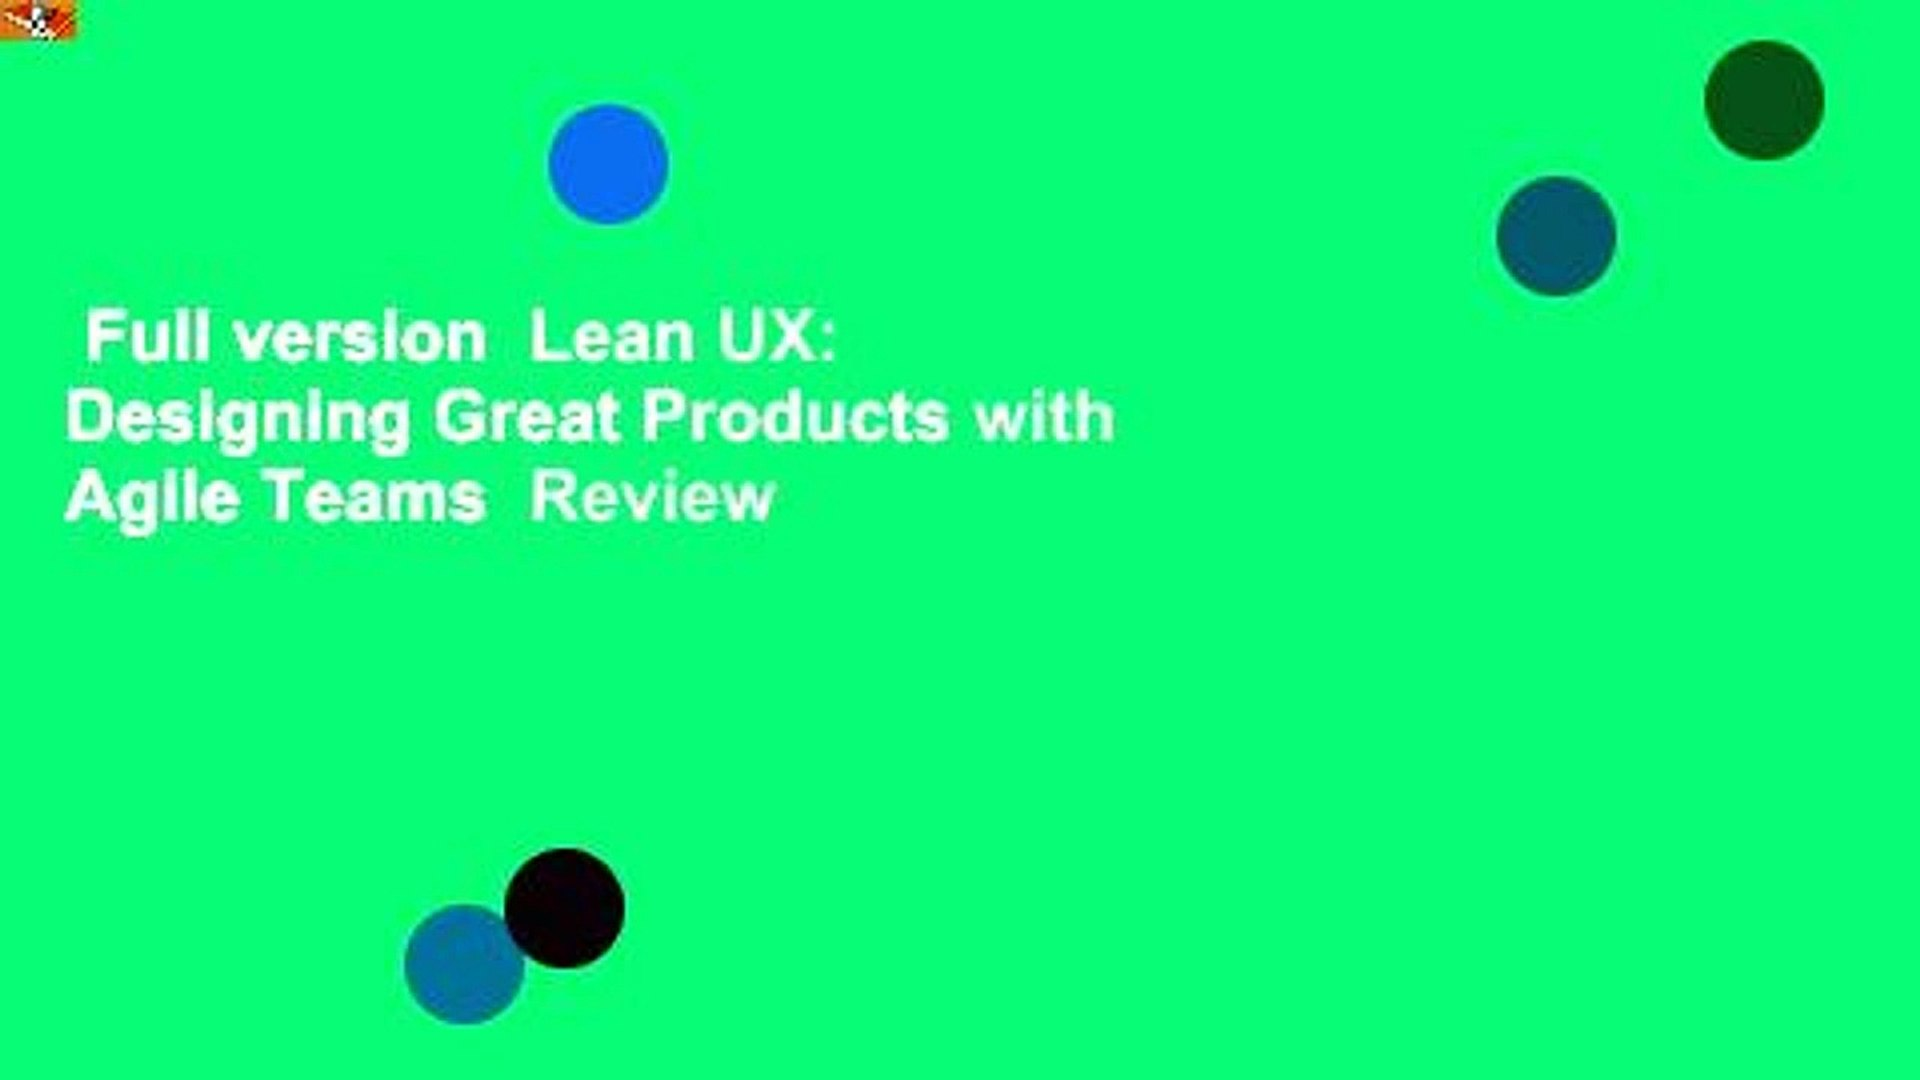 Designing Great Products with Agile Teams Lean UX